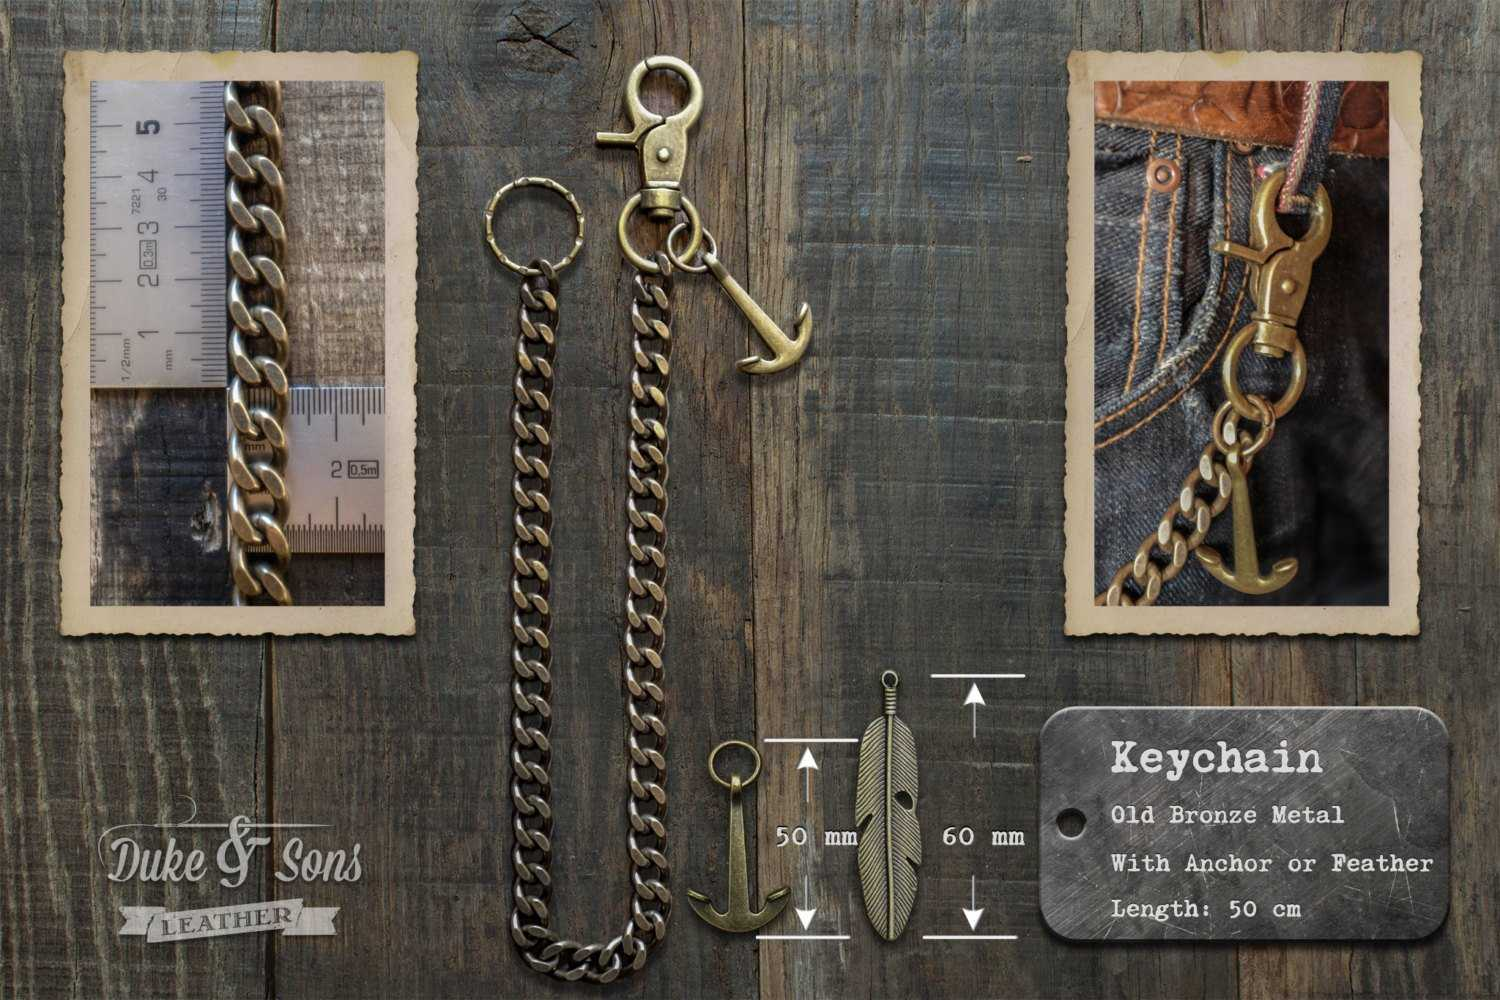 Bronze keychain (50cm) with anchor or feather.